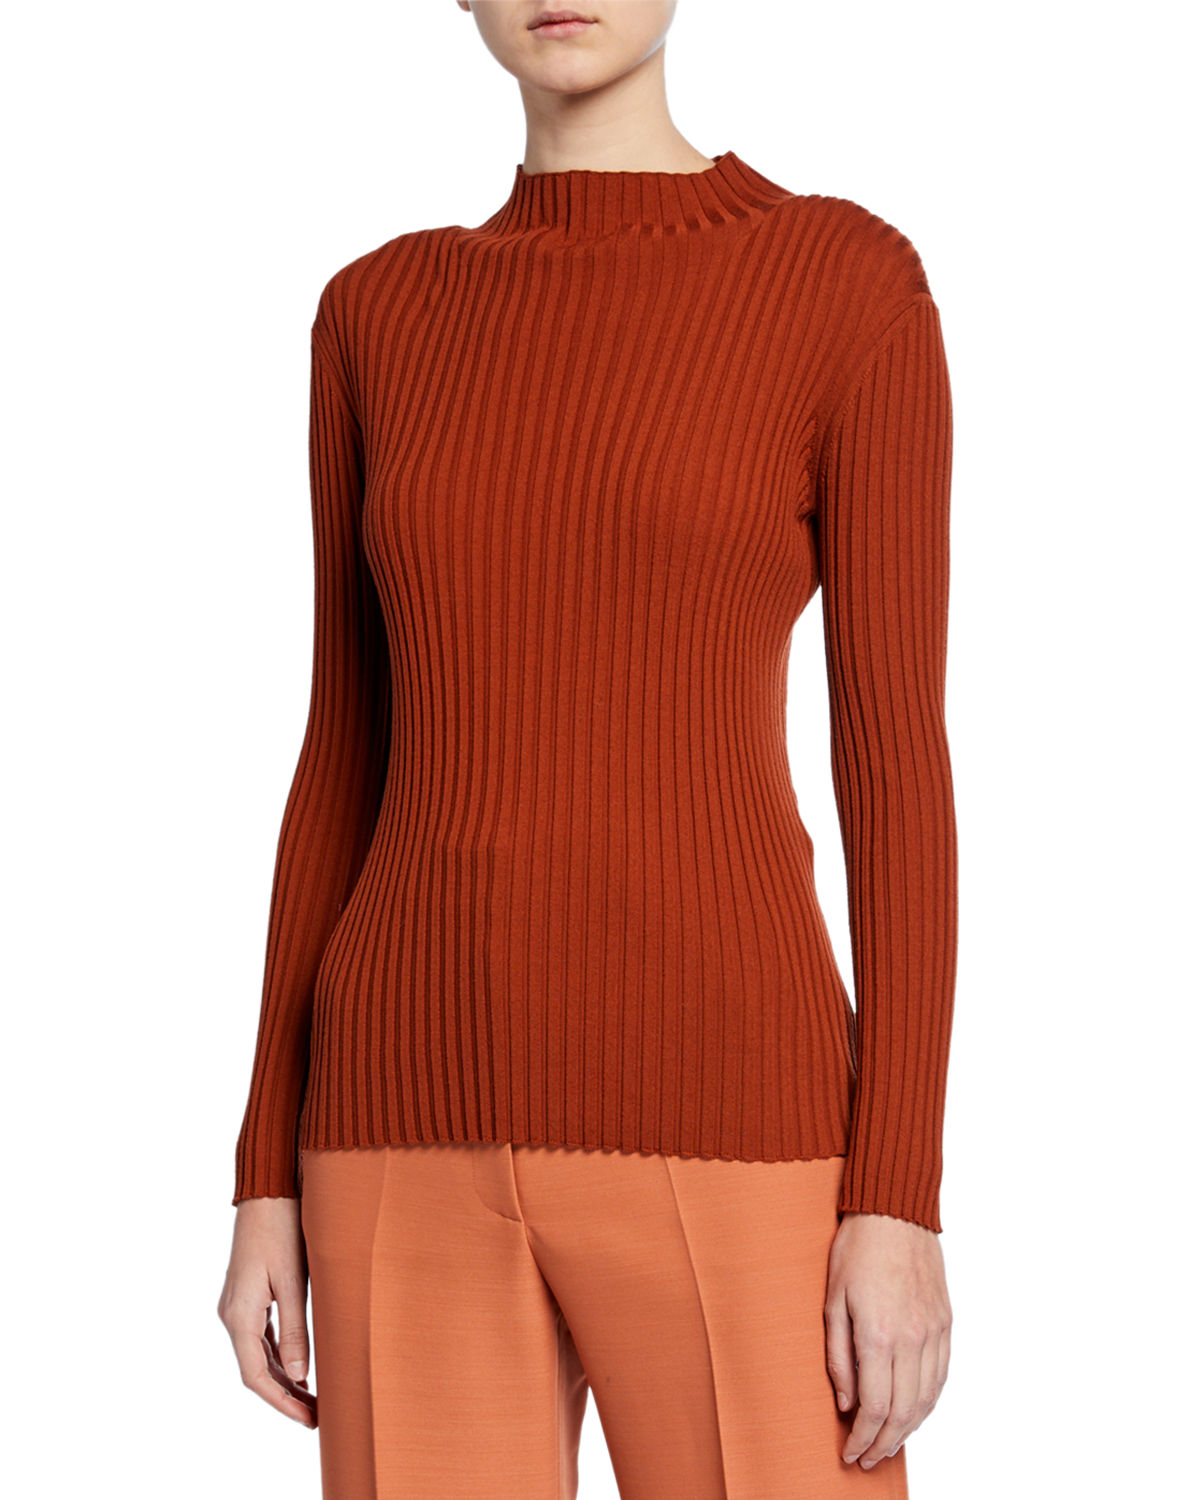 Partow KAIA RIBBED TURTLENECK SWEATER